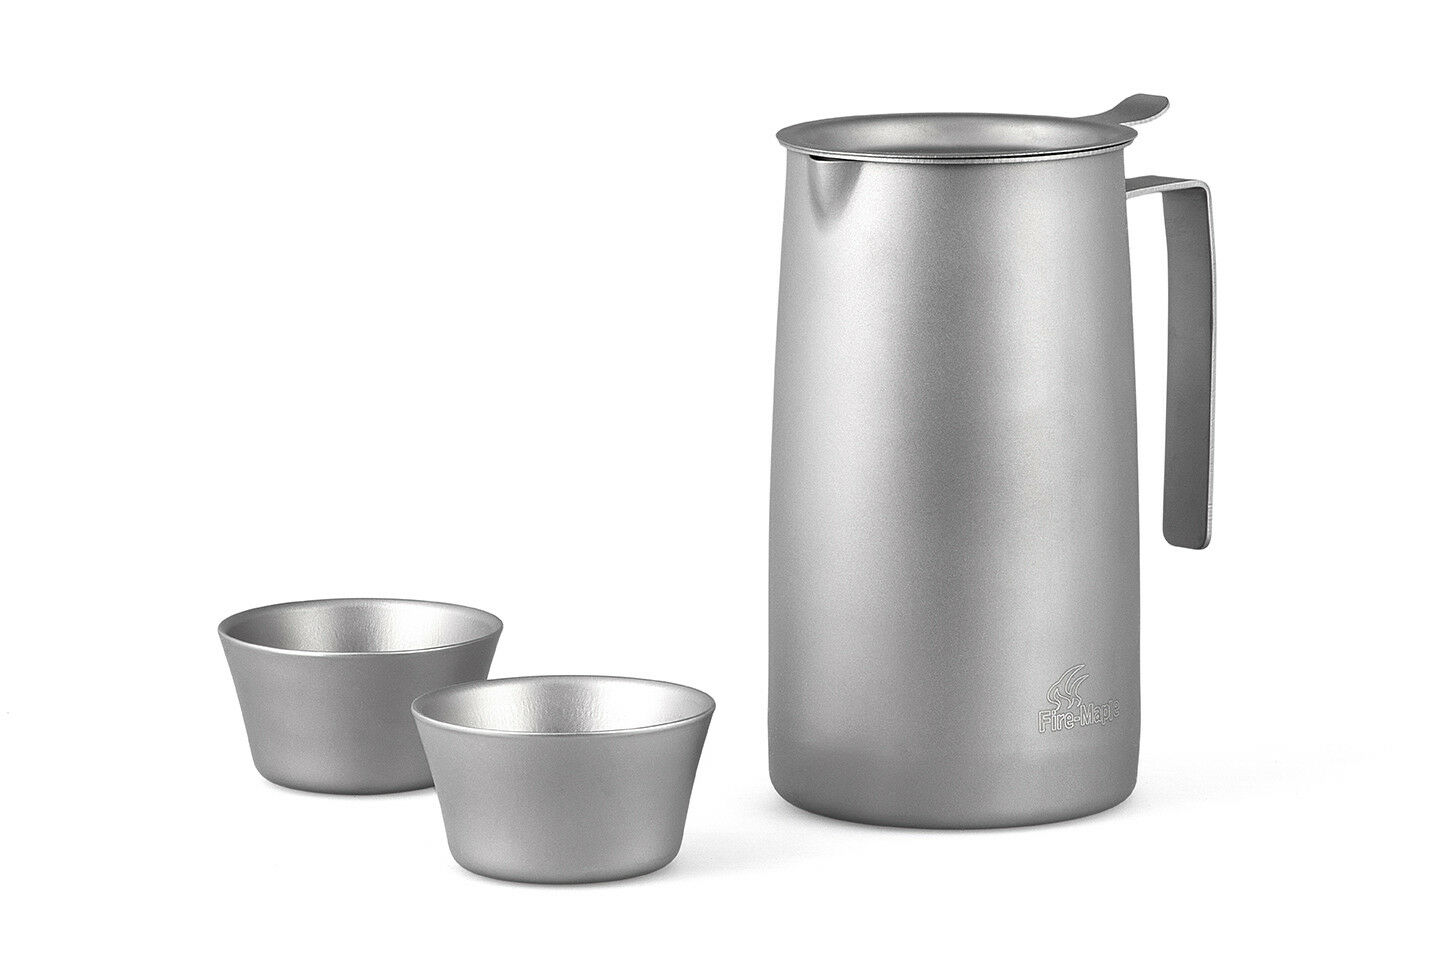 Fire Maple FMP-T320 Ultralight Titanium Pot  Two Cups with Tea Filter  70% off